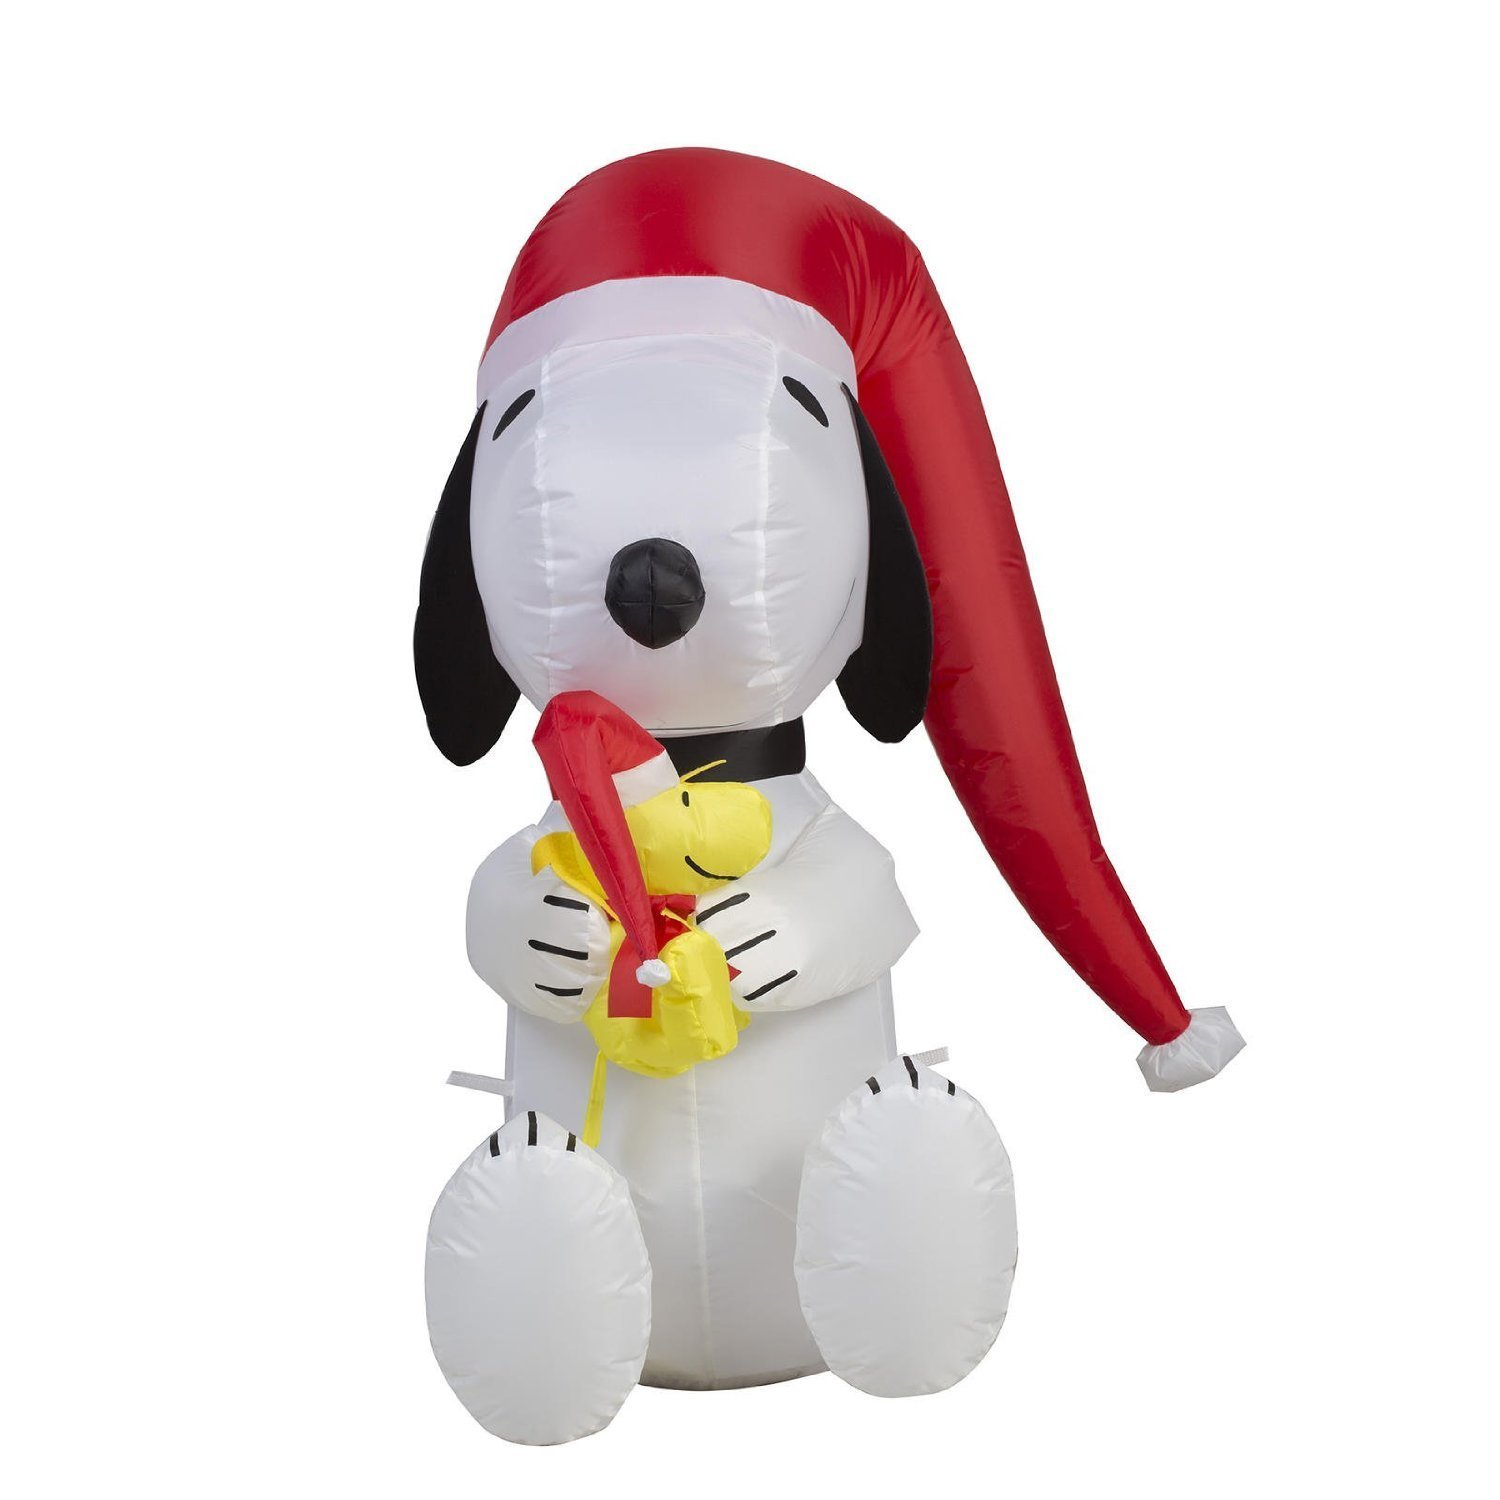 Amazon.com : Airblown Inflatable Peanuts 3' LED Lighted Snoopy and ...